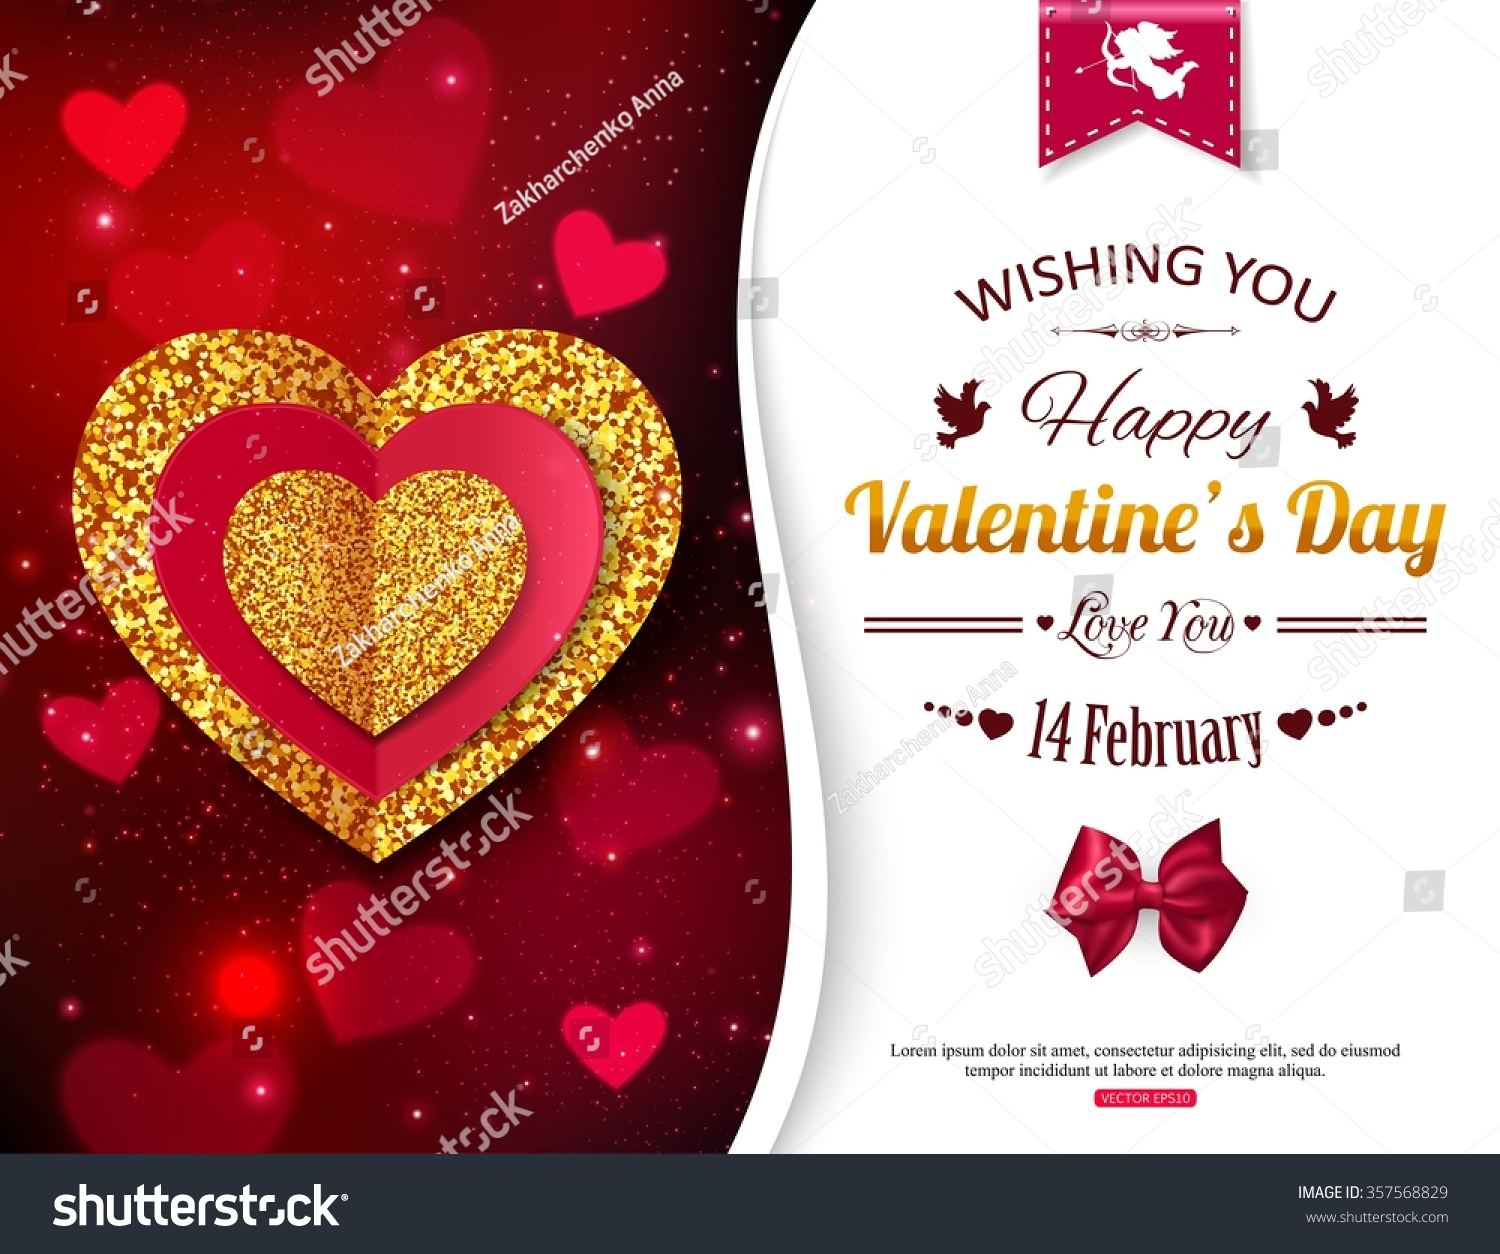 Valentines Day Party Invitation Vector Illustration Stock Vector ...